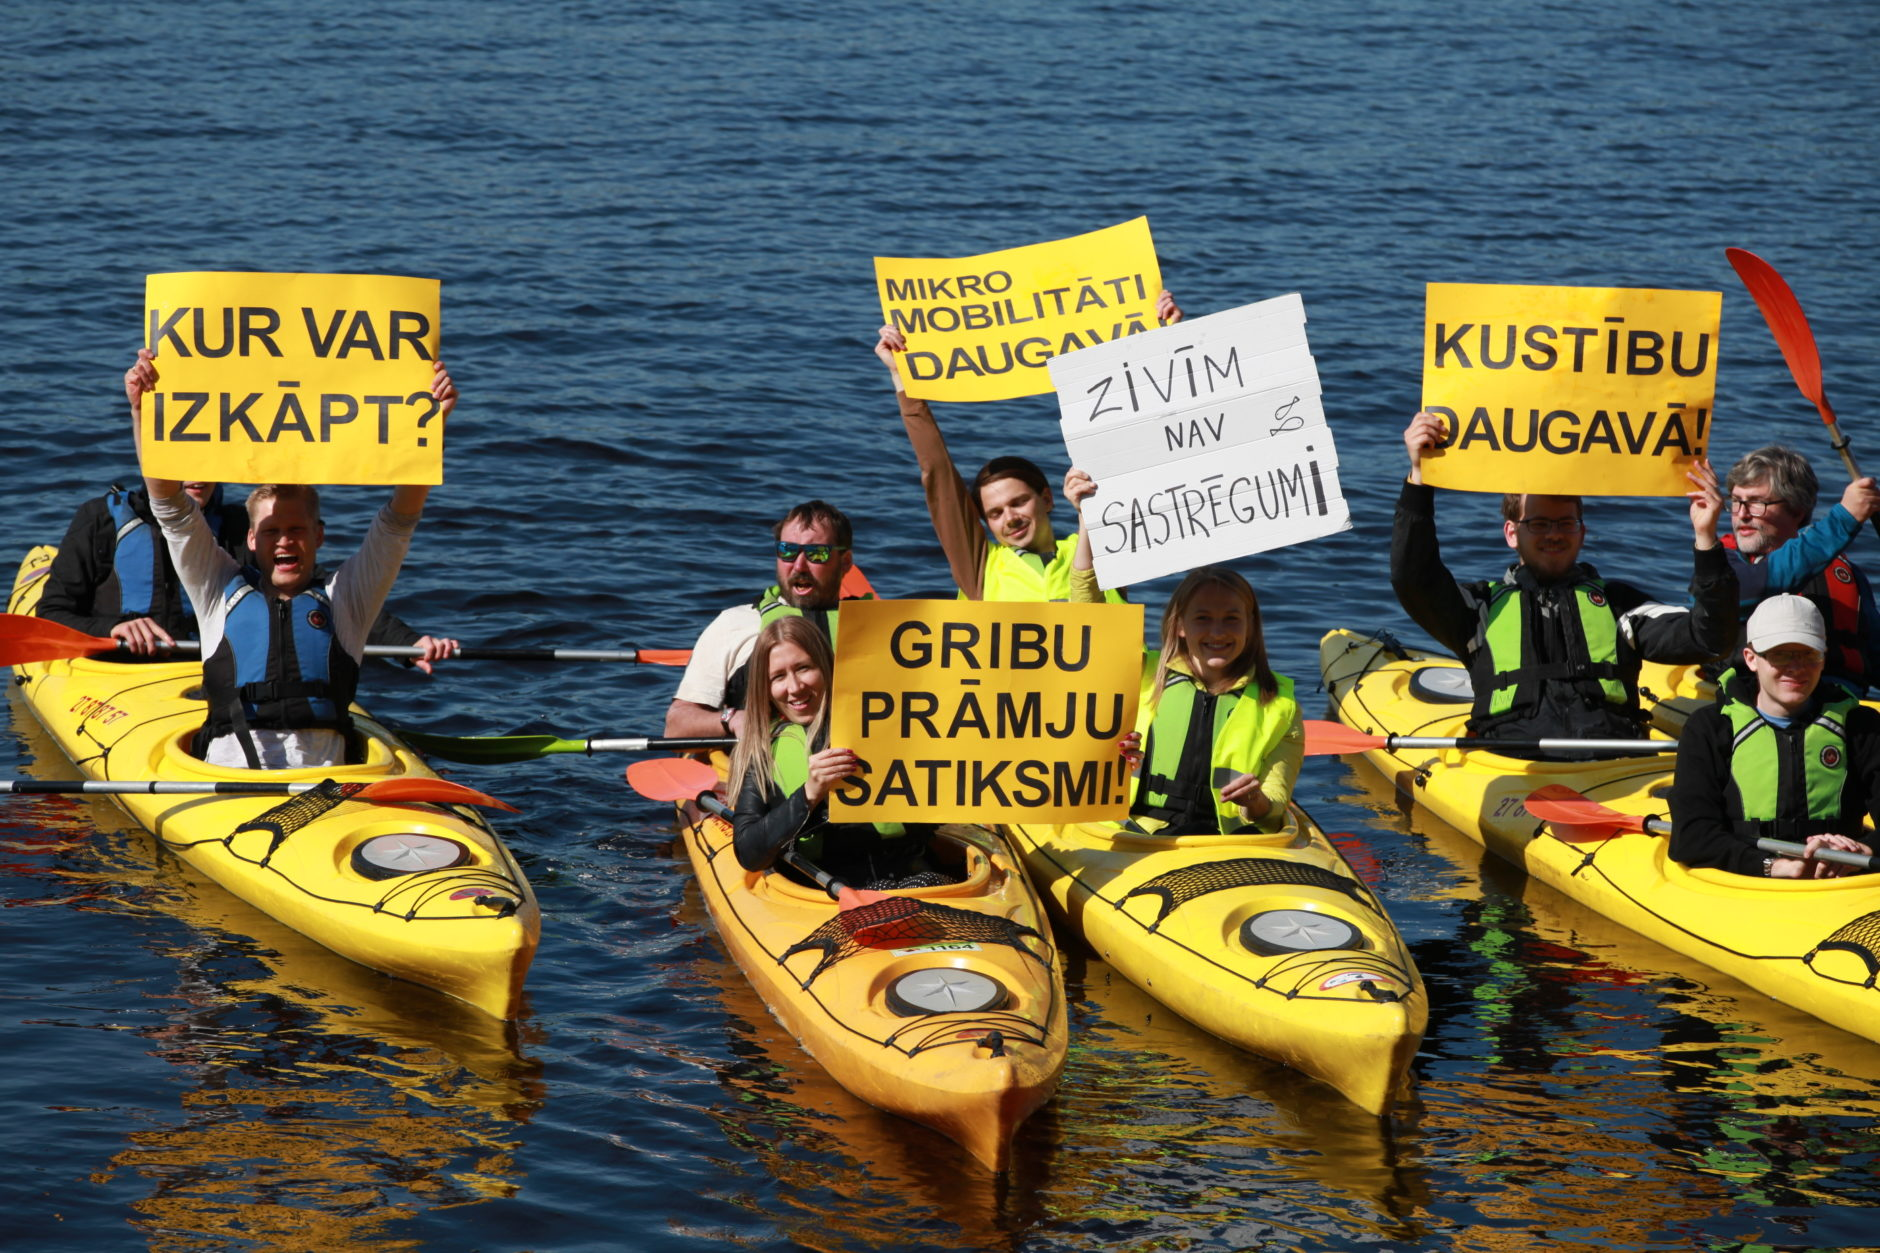 Mad City hackathon participants convey their thoughts from boats on the Daugava River in Riga, Latvia, May 2019.